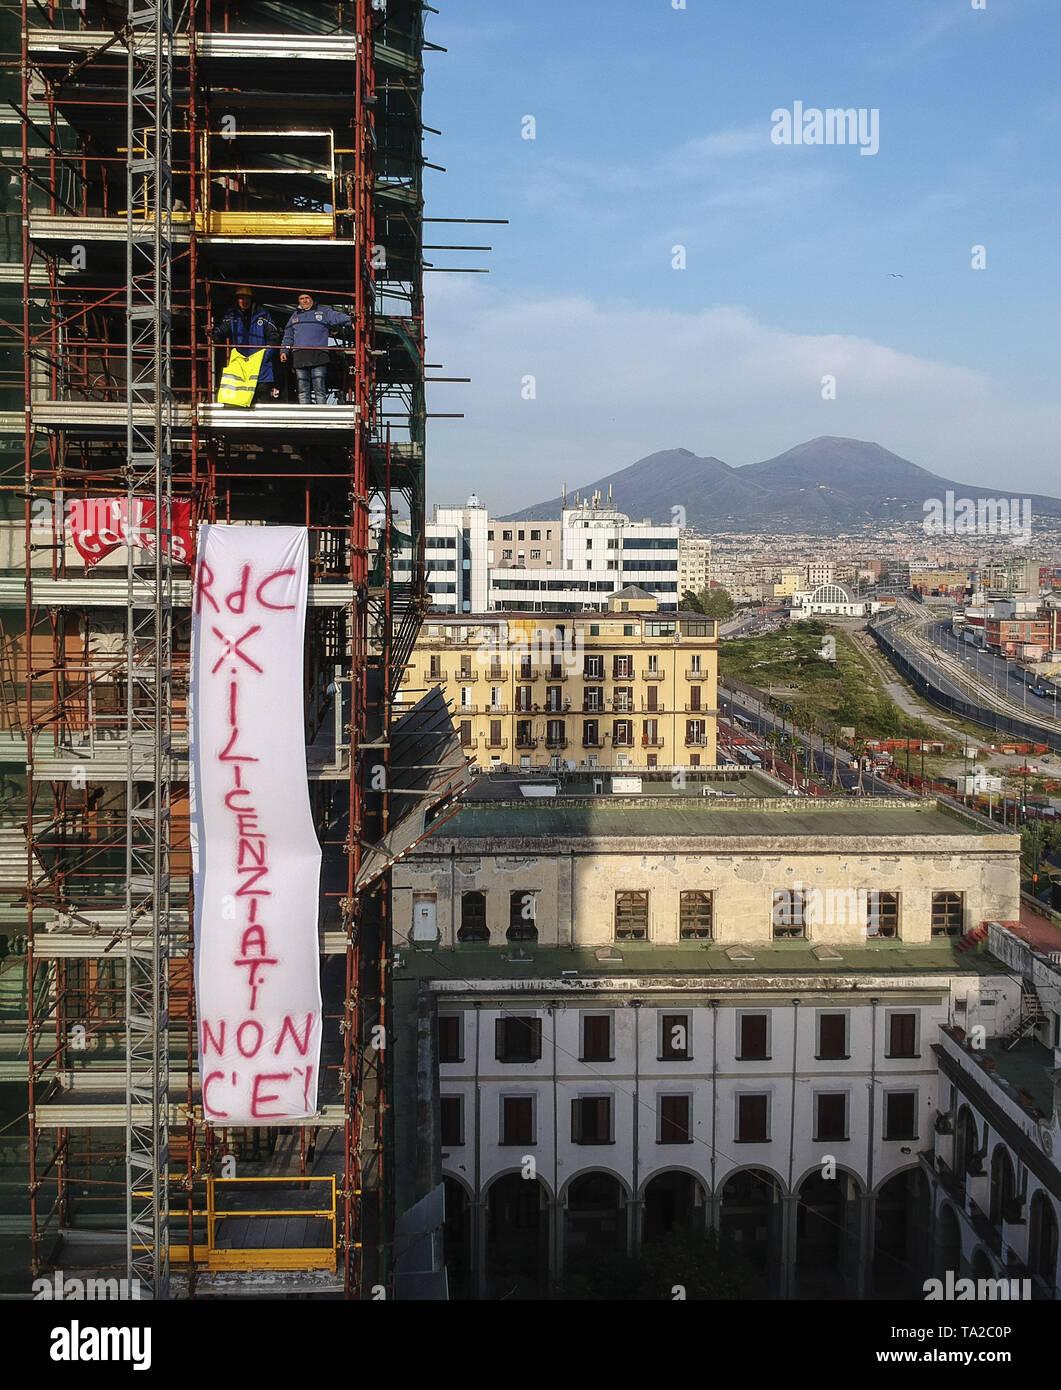 Two employees fired by the FCA after exhibiting a mannequin of Sergio Marchionne hanged at a demonstration in Pomigliano d'Arco, protest with a banner on the bell tower of the Chiesa del Carmine, in Piazza Mercato in Naples, with the inscription 'Citizenship income for laid off is not there'  Featuring: Atmosphere Where: Naples, Italy When: 20 Apr 2019 Credit: IPA/WENN.com  **Only available for publication in UK, USA, Germany, Austria, Switzerland** - Stock Image